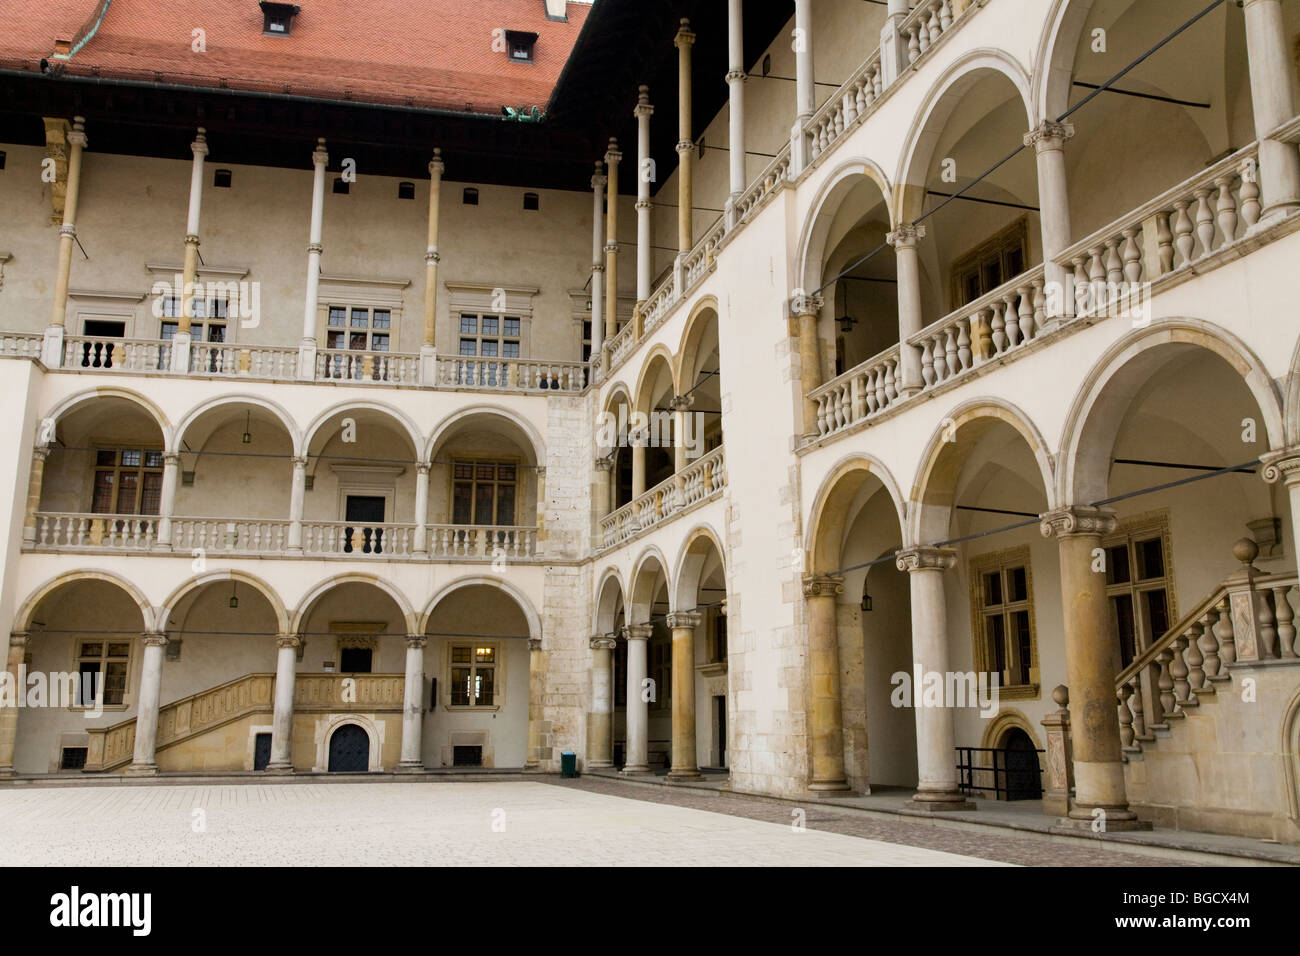 The arched cloisters around the 16th Century Renaissance style courtyard. Wawel Castle. Krakow, Poland. Stock Photo